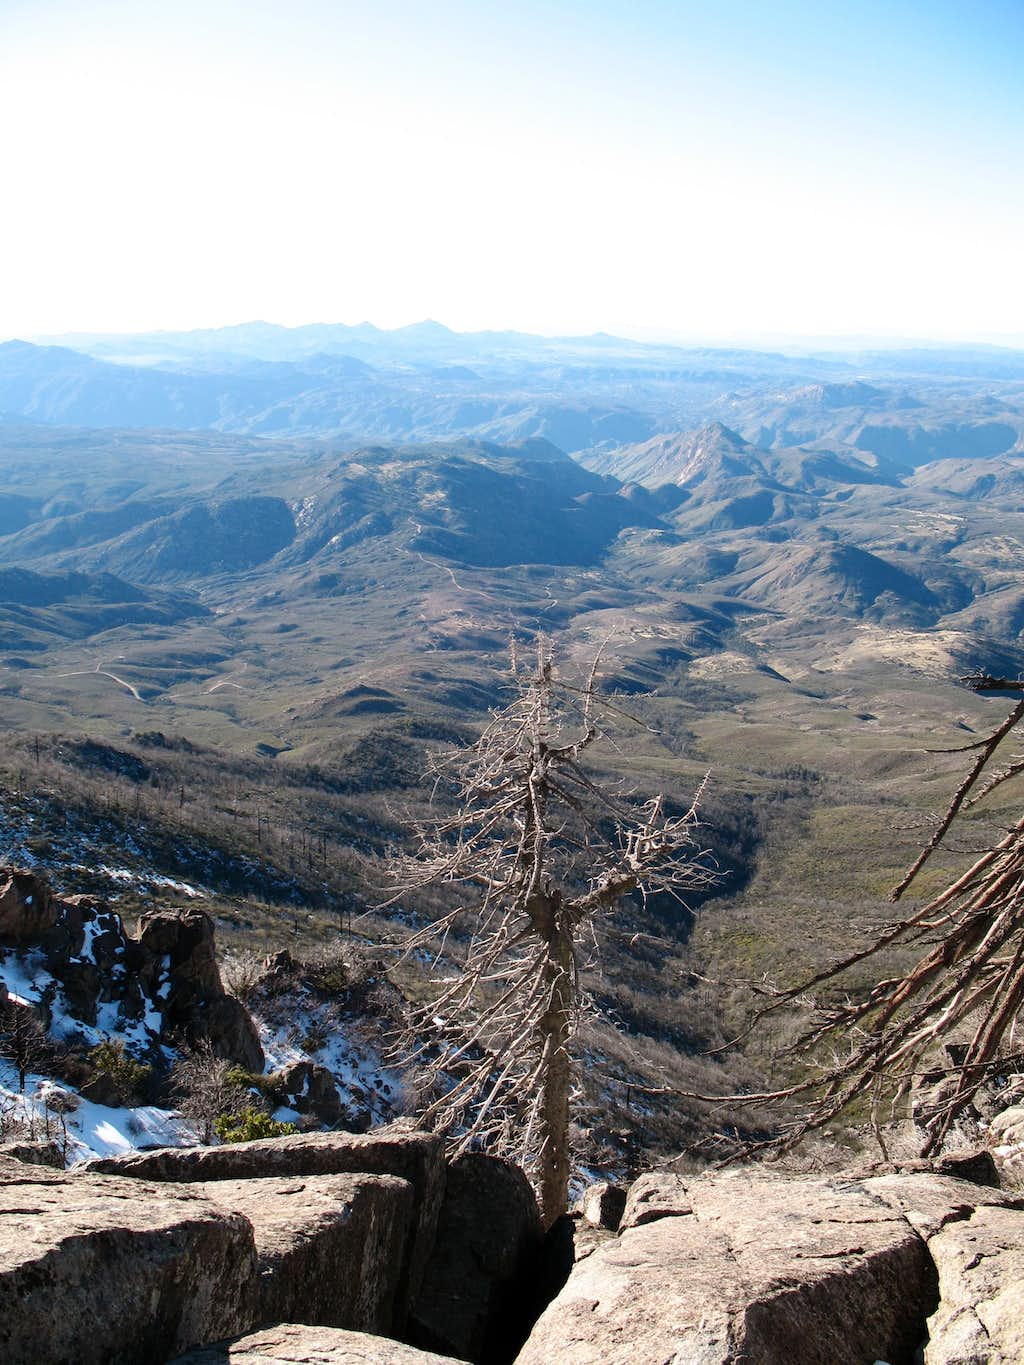 An account of the hiking trip atop mt madison